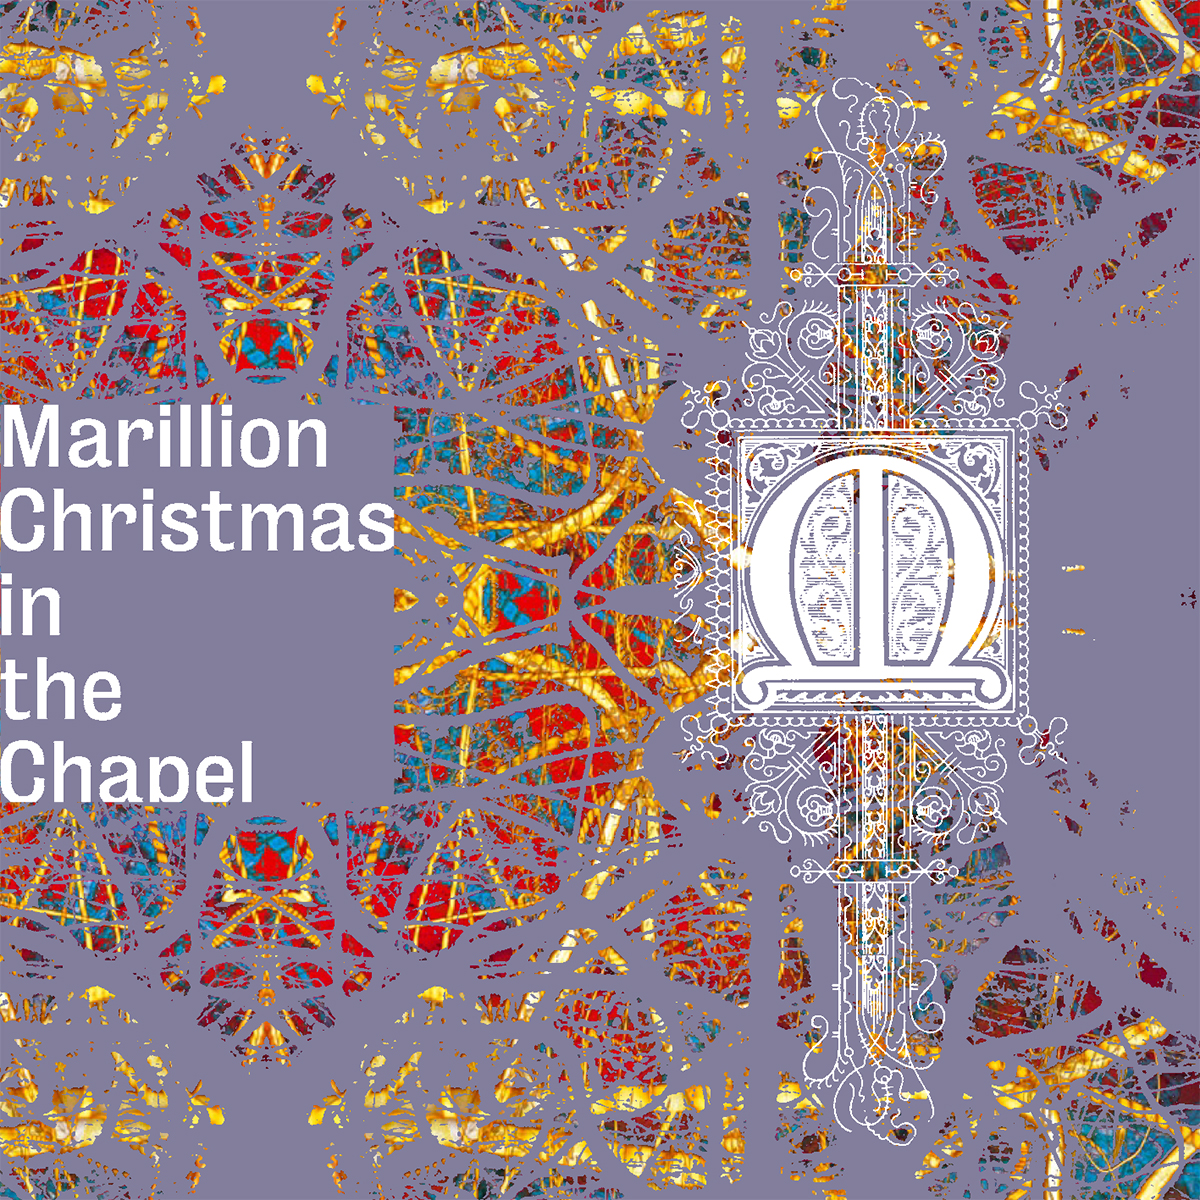 CHRISTMAS IN THE CHAPEL 256 KBPS ALBUM DOWNLOAD